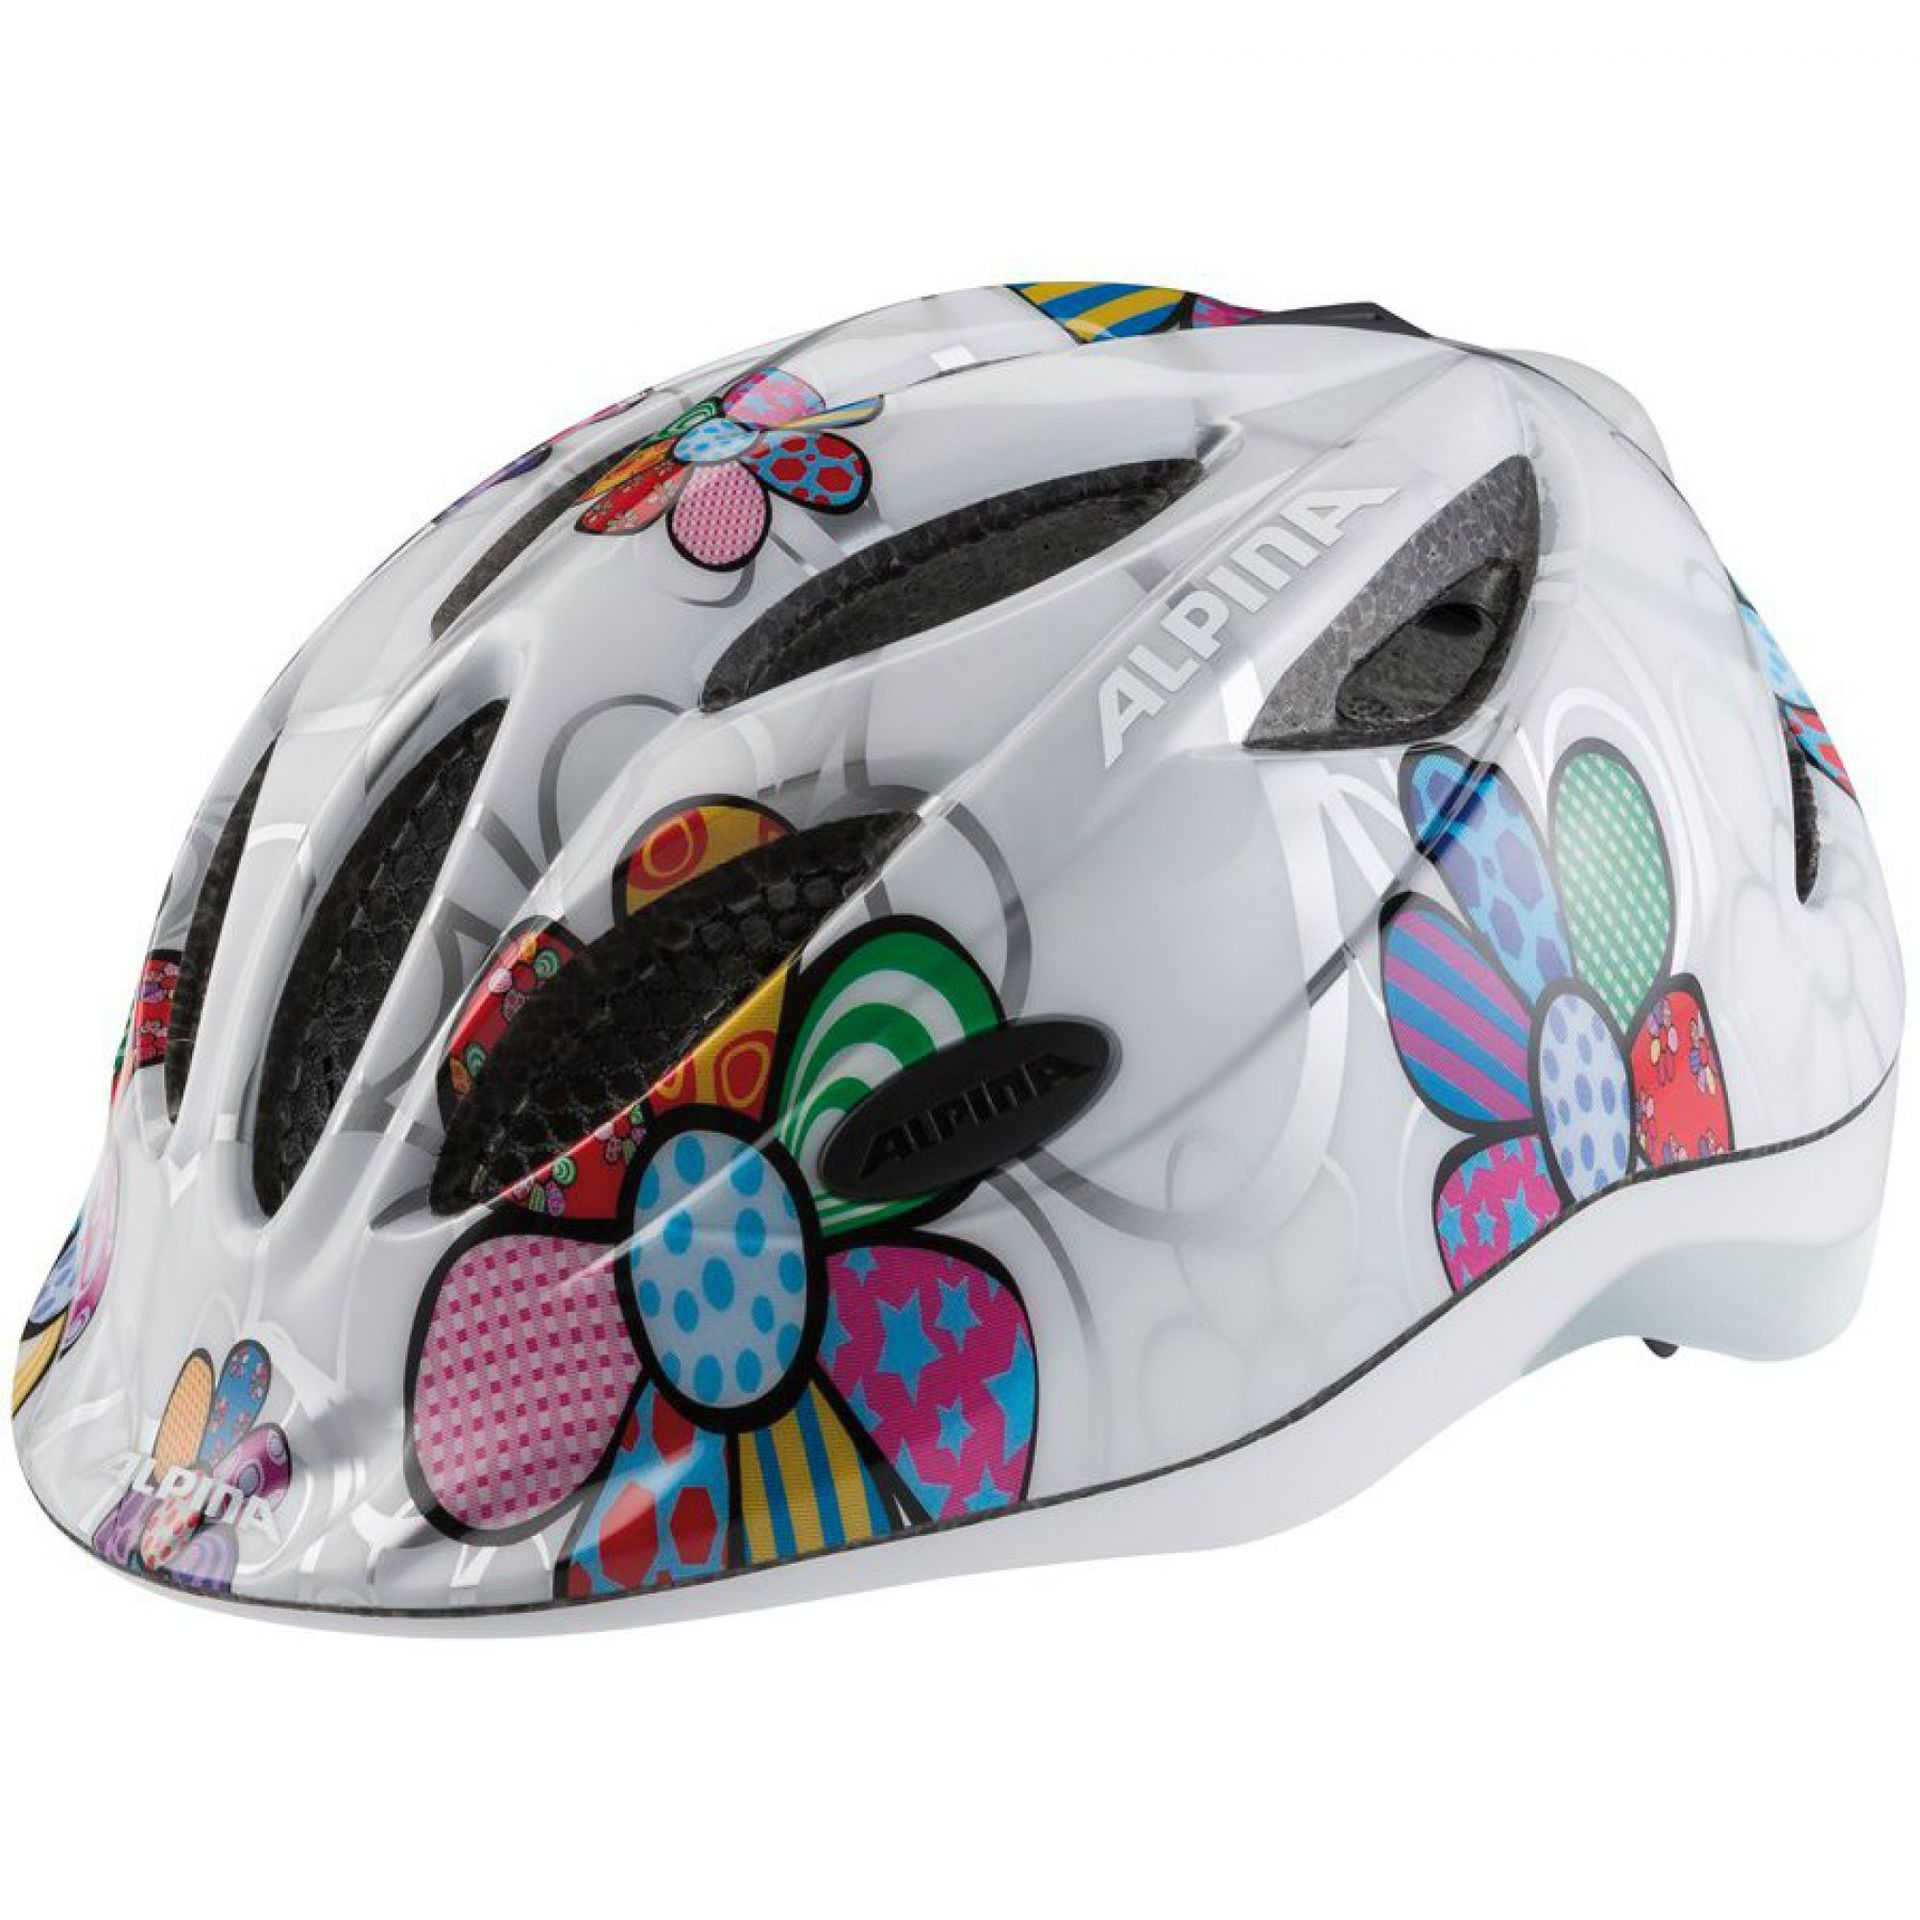 KASK ROWEROWY ALPINA GAMMA FLASH 2.0 white flower